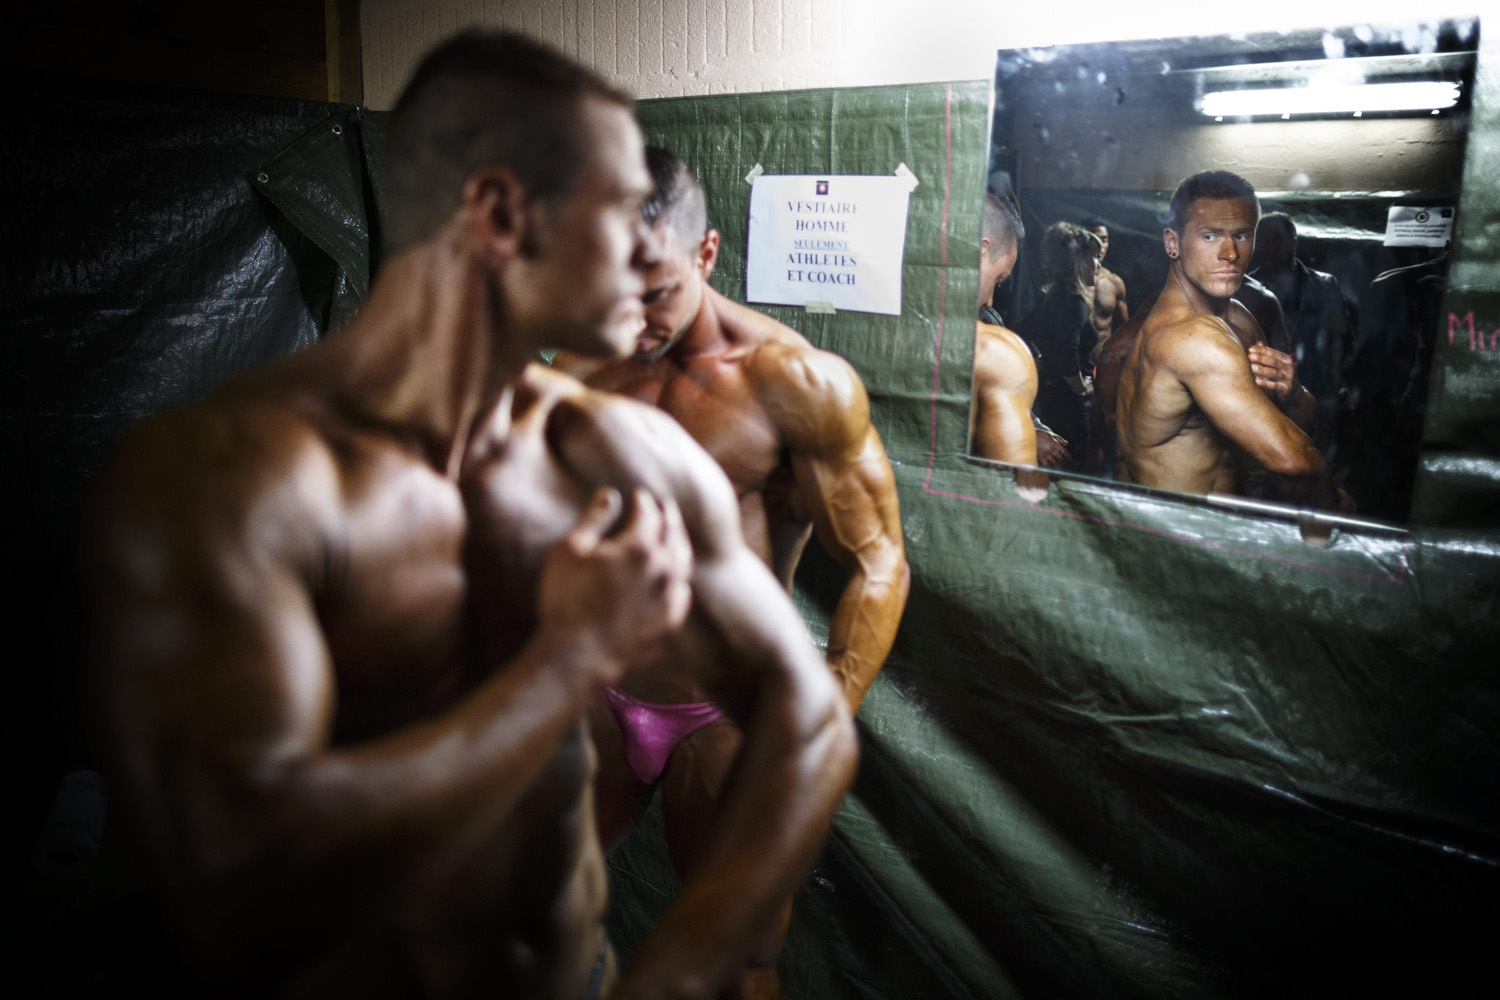 May 25, 2014. A bodybuilder applies self-tanning lotion on his body prior to the final event of the World Amateur Bodybuilding Association (WABA) Swiss fitness and bodybuilding championships in Epalinges near Lausanne, Switzerland.